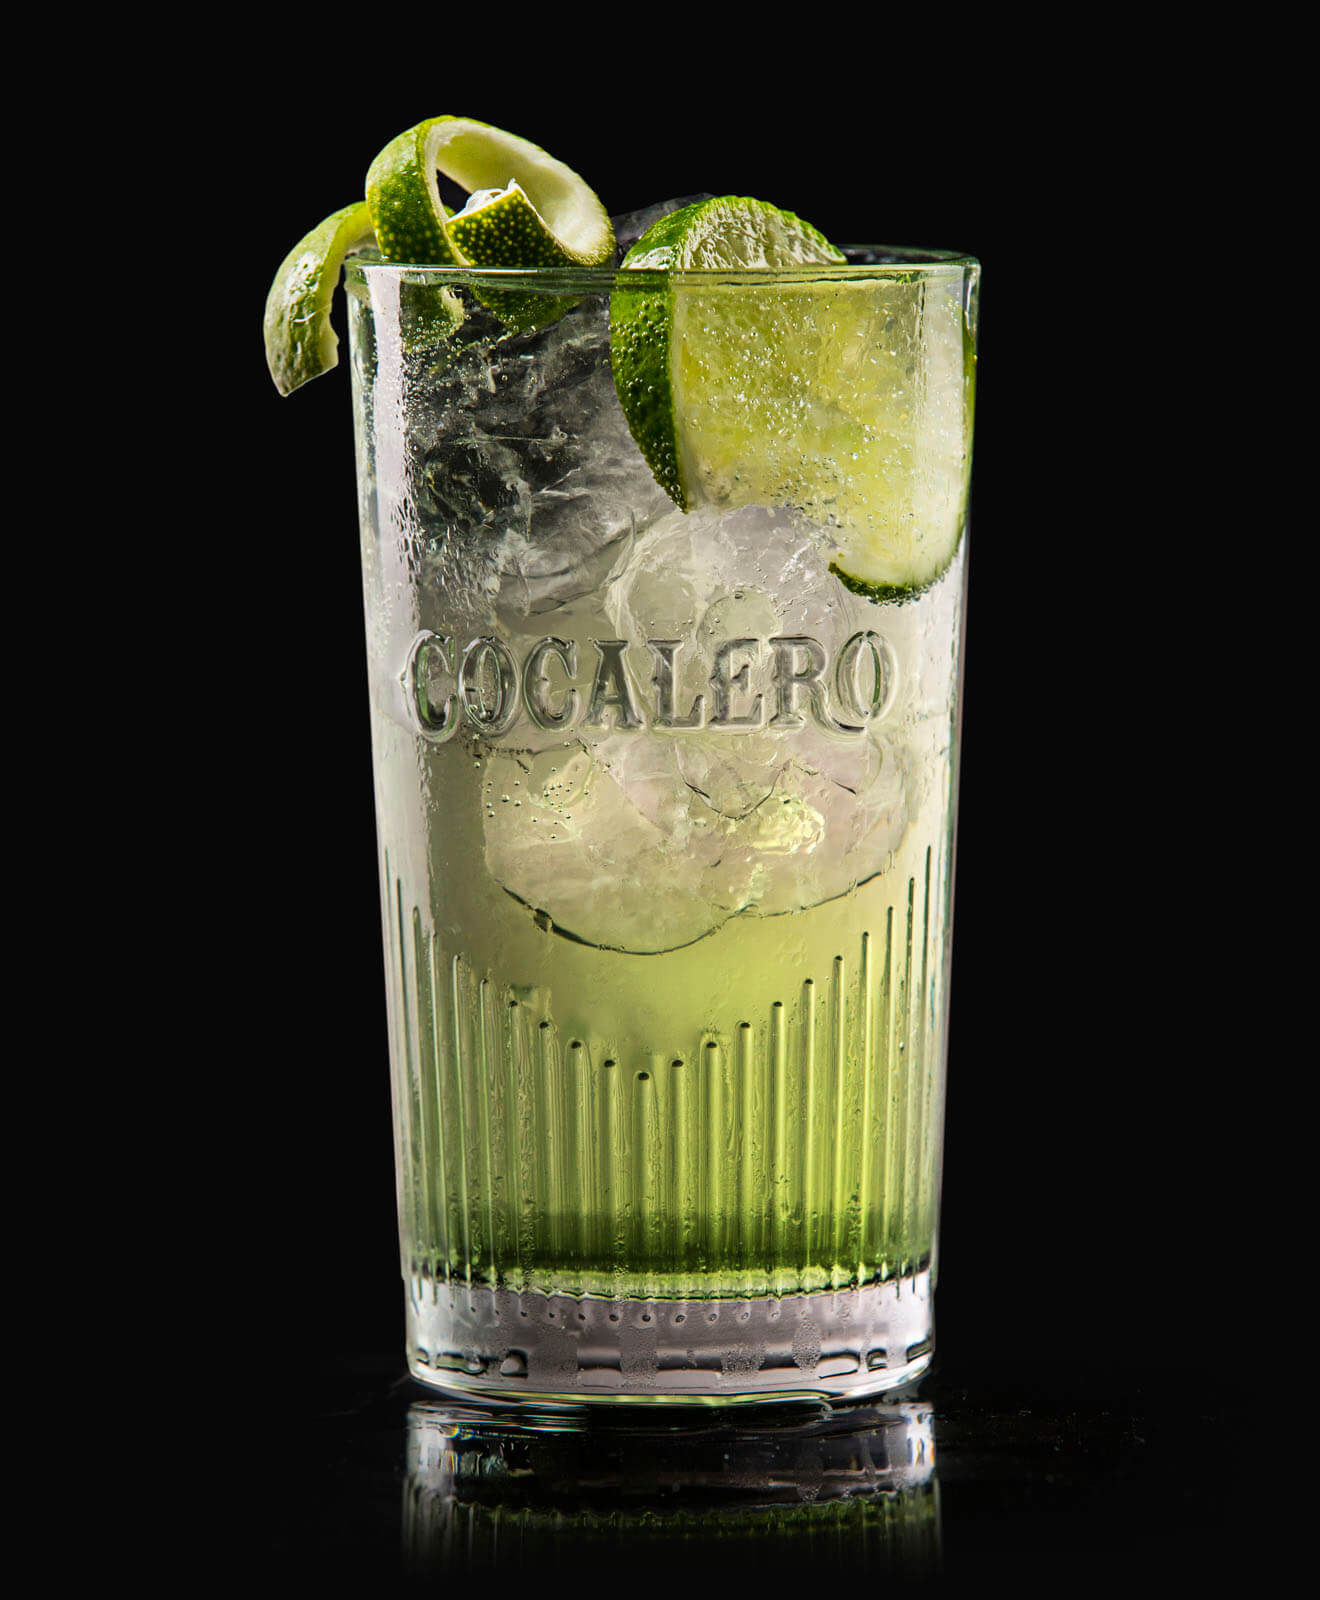 Cocalero Highball, cocktail with garnishes, highball glass